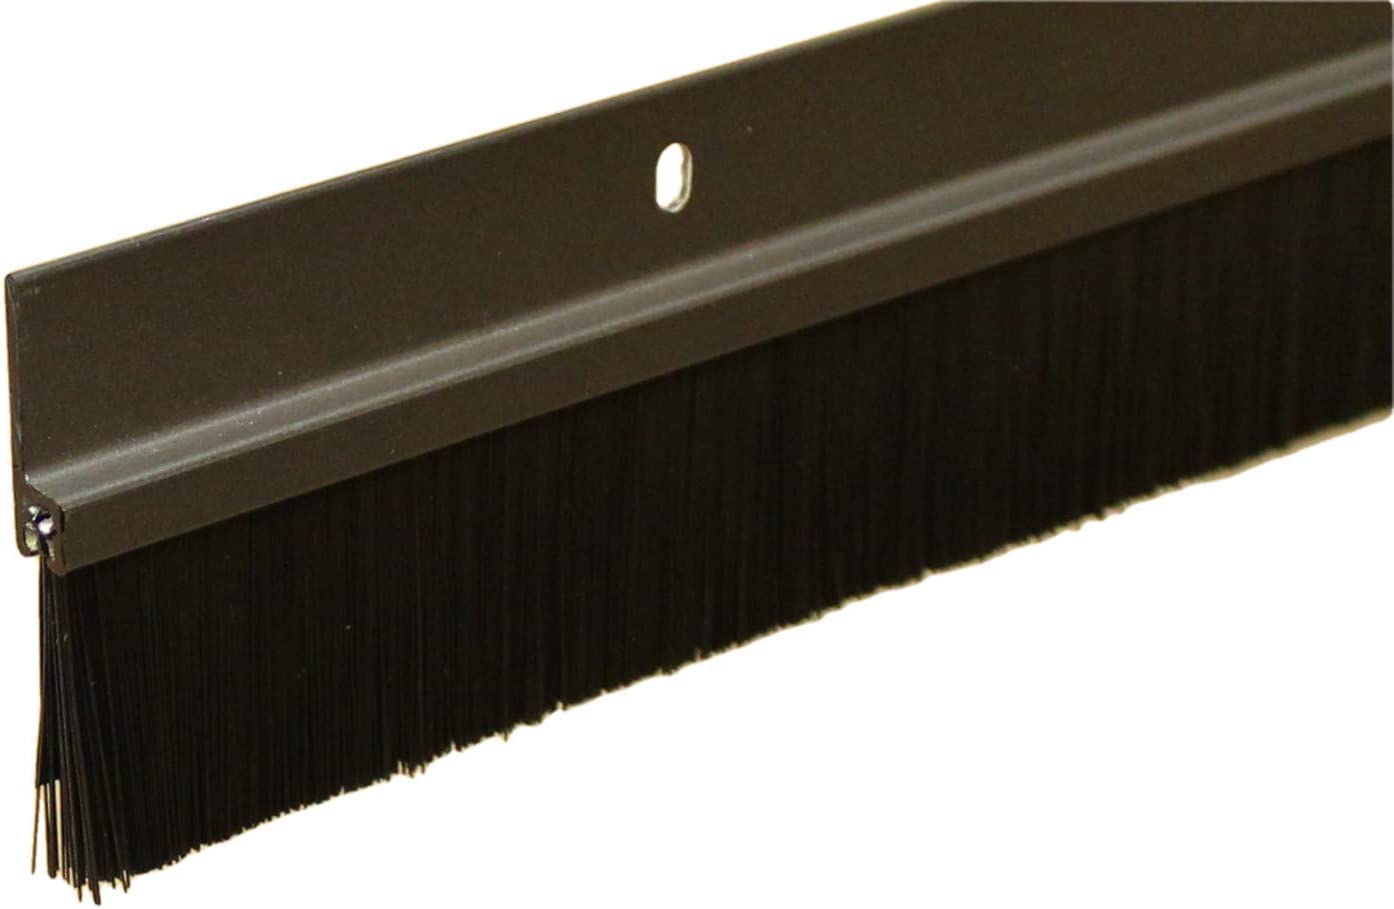 Brush Sweep Door Sweep with Black 1 1//2 Brush 3 FT, Clear Anodized